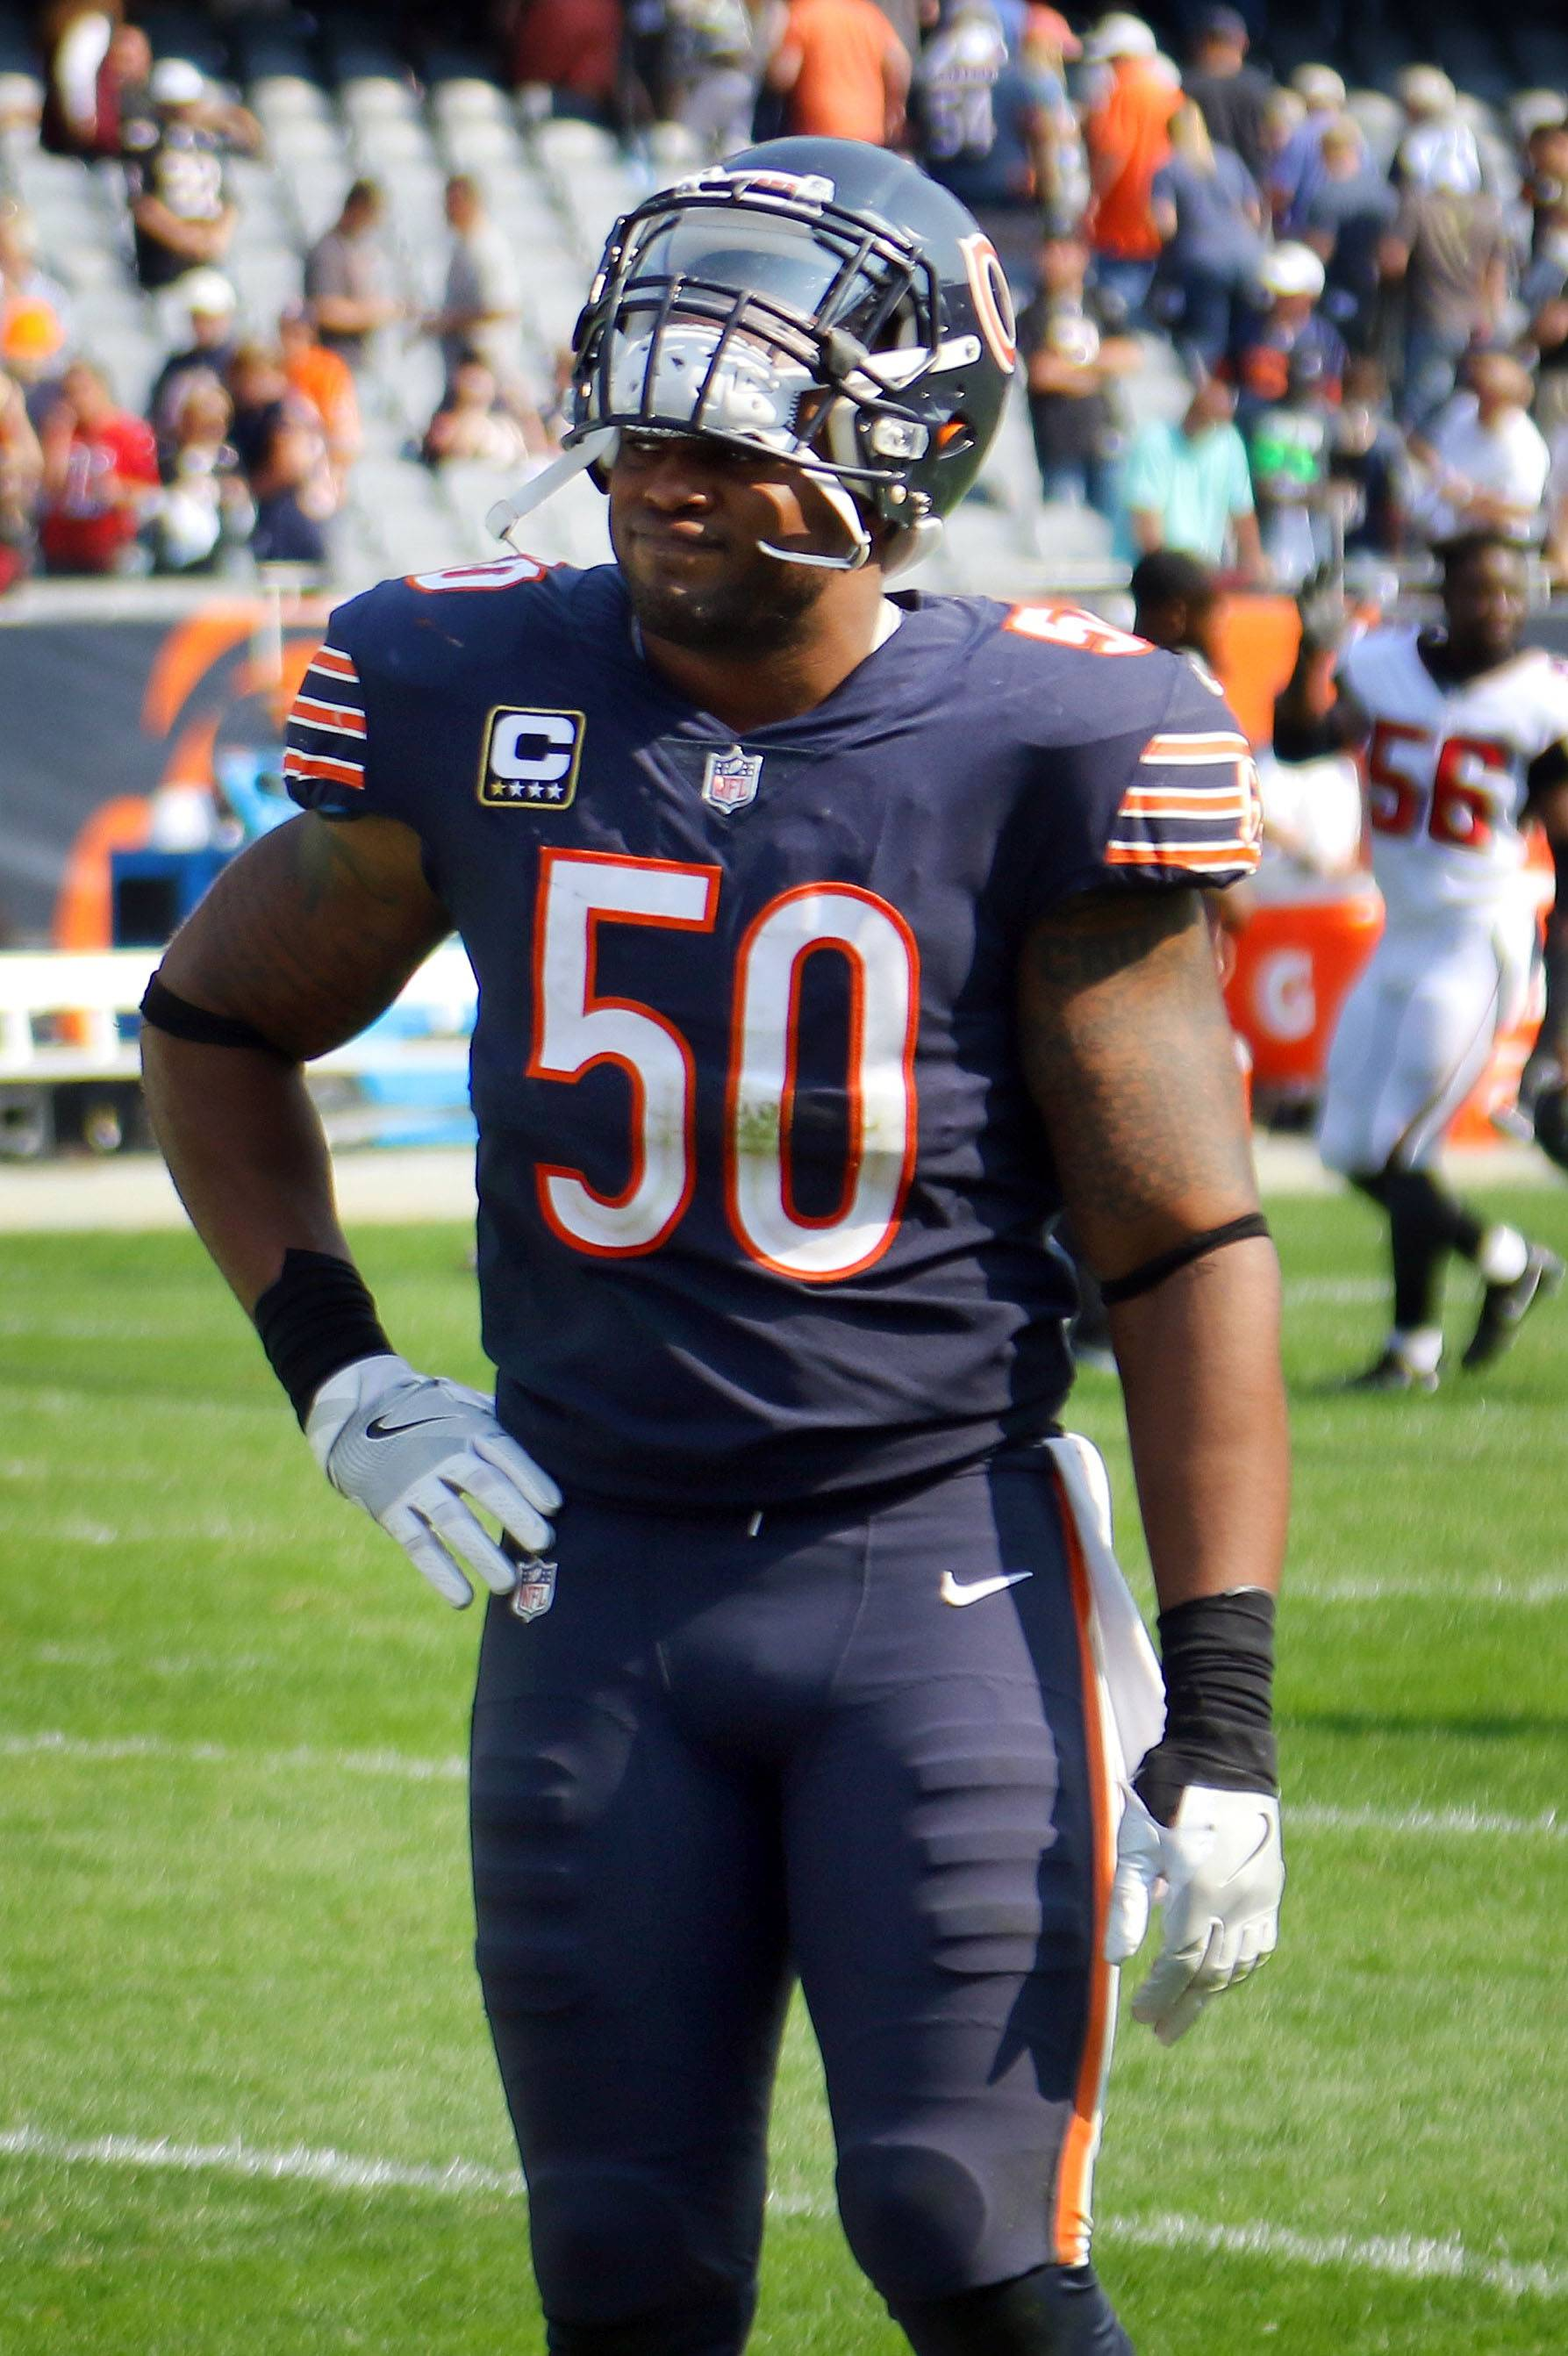 Linebacker Jerrell Freeman is no longer a member of the Chicago Bears, who released the six-year veteran on Tuesday.